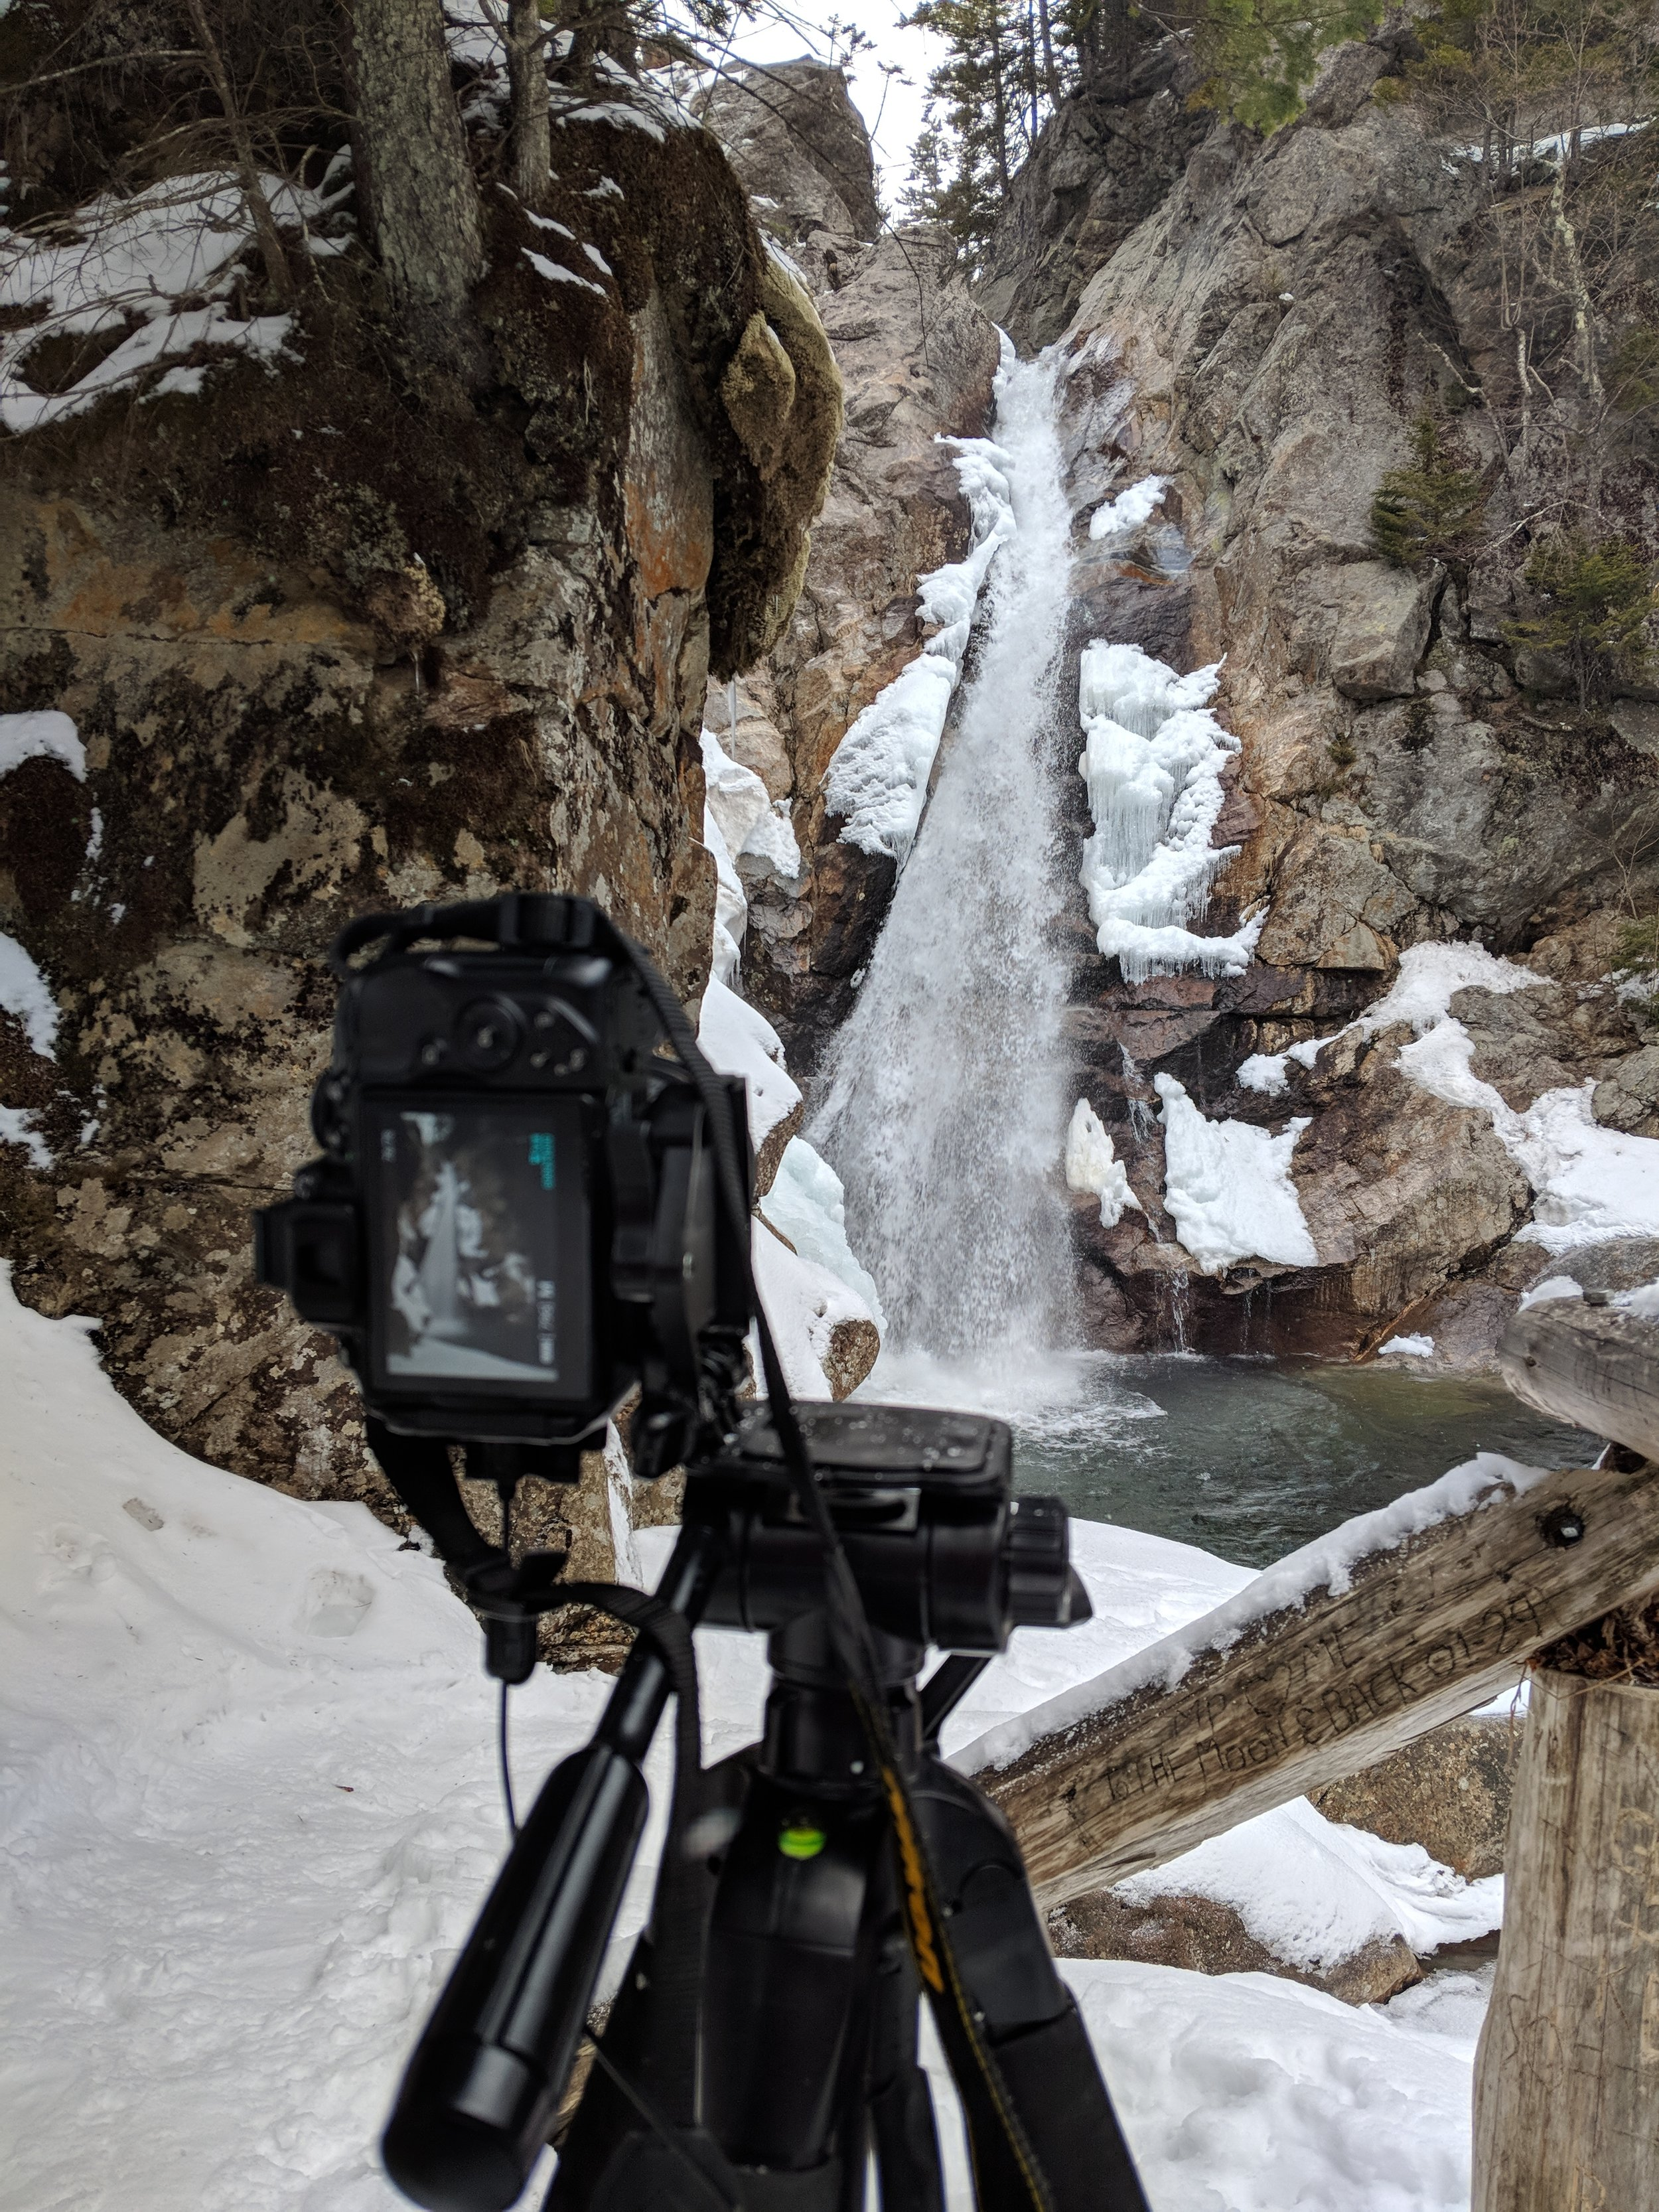 The Setup - It was a nice little spot to setup for a shot